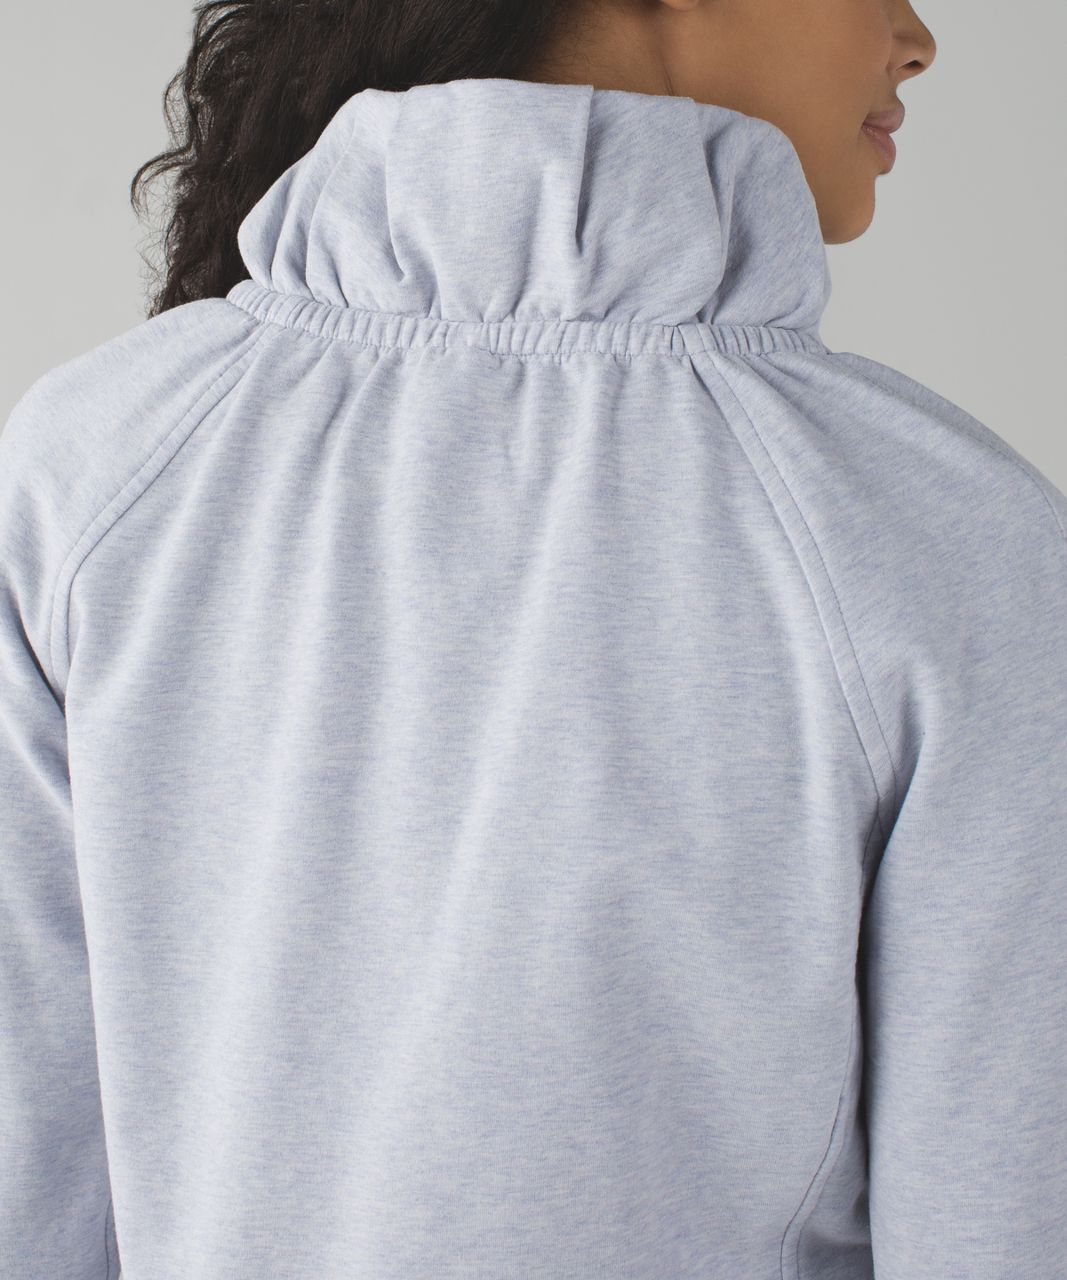 Lululemon After All Pullover - Heathered Cool Breeze